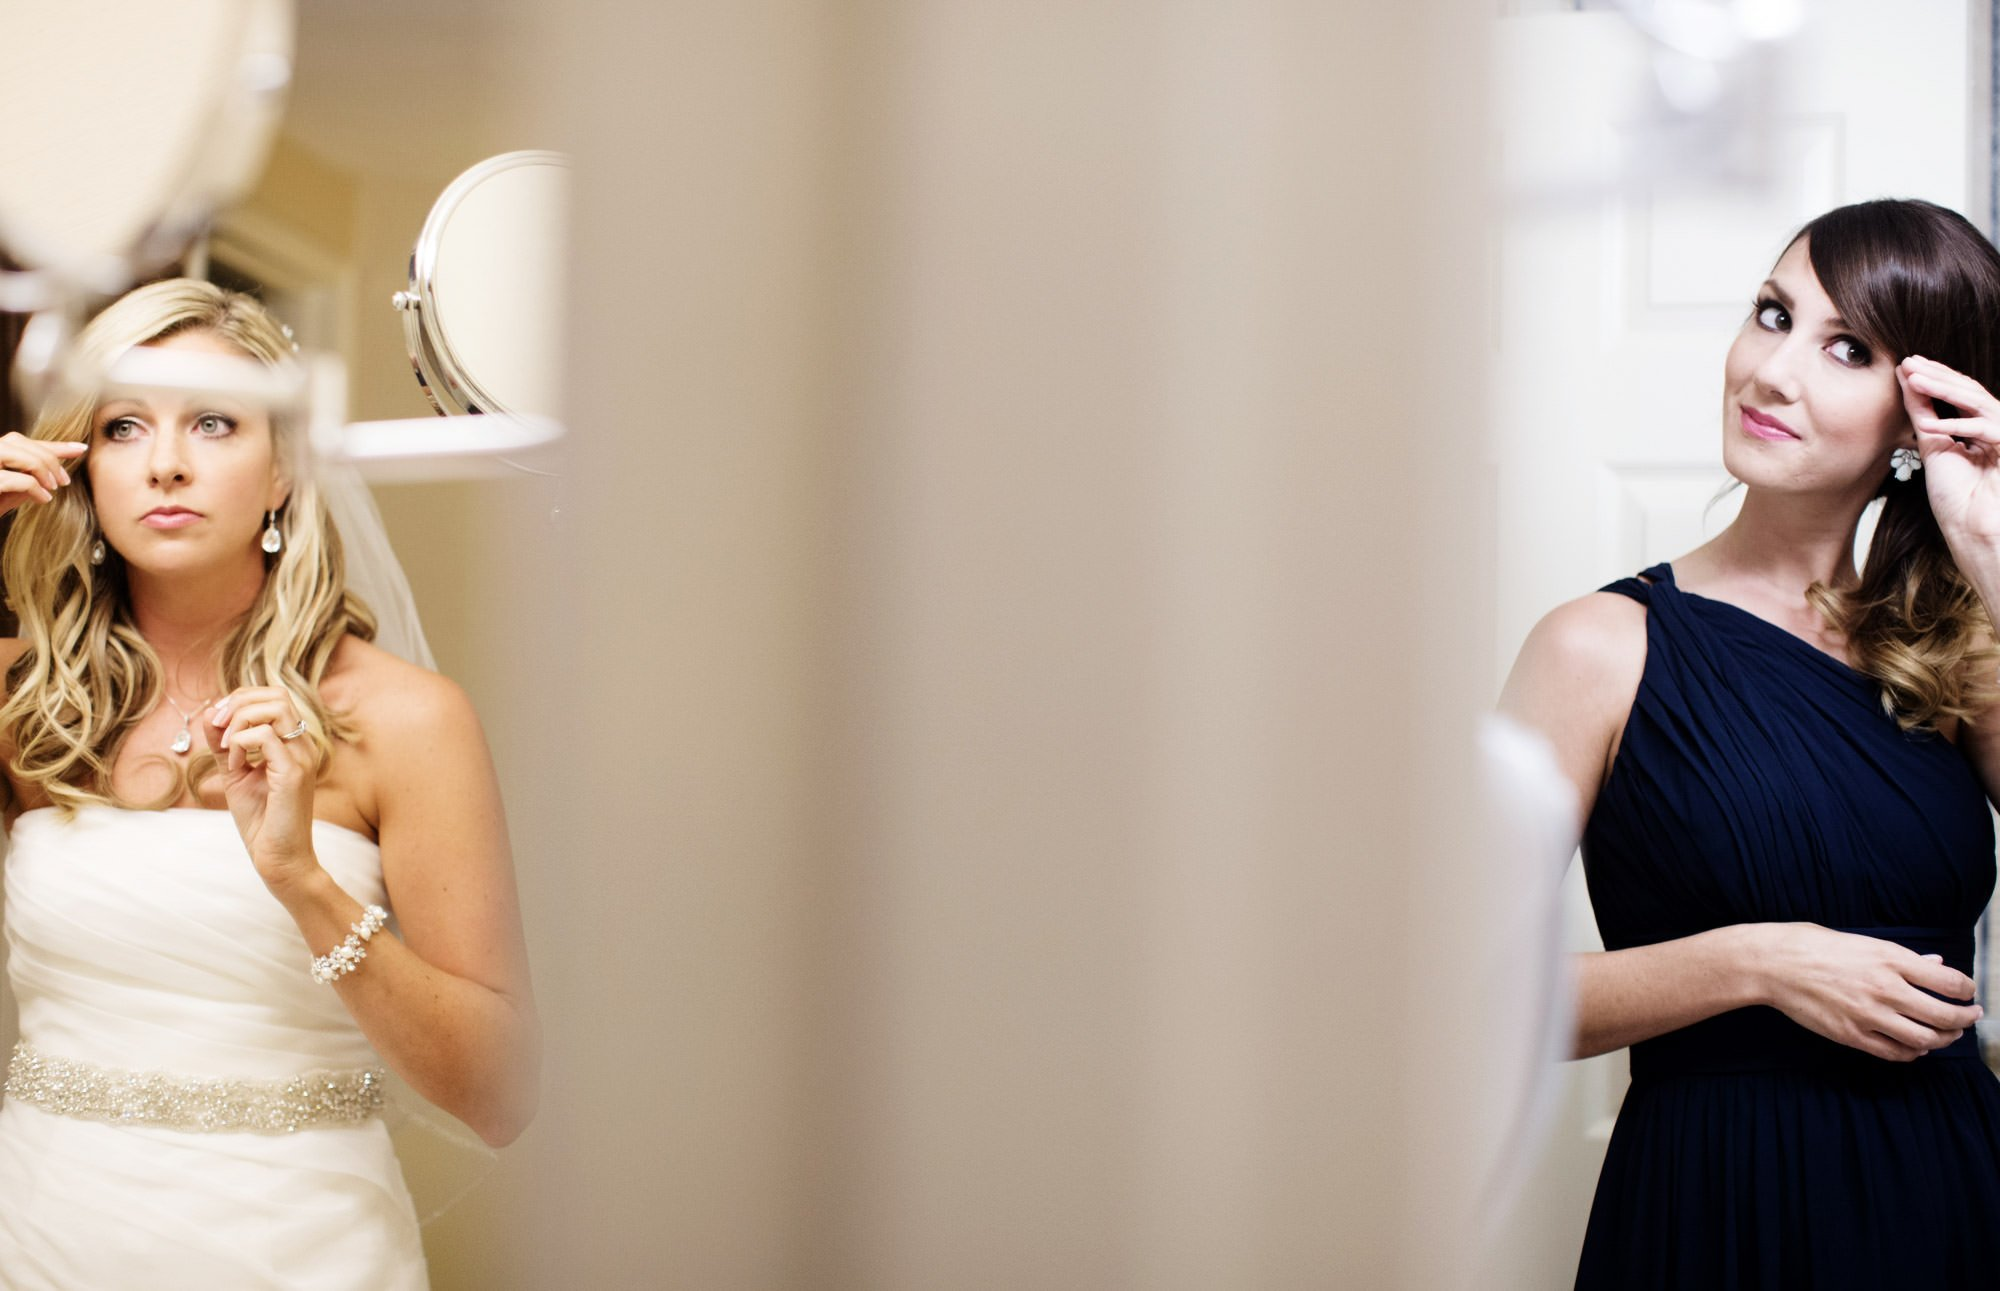 The bride gets ready with her bridesmaids.